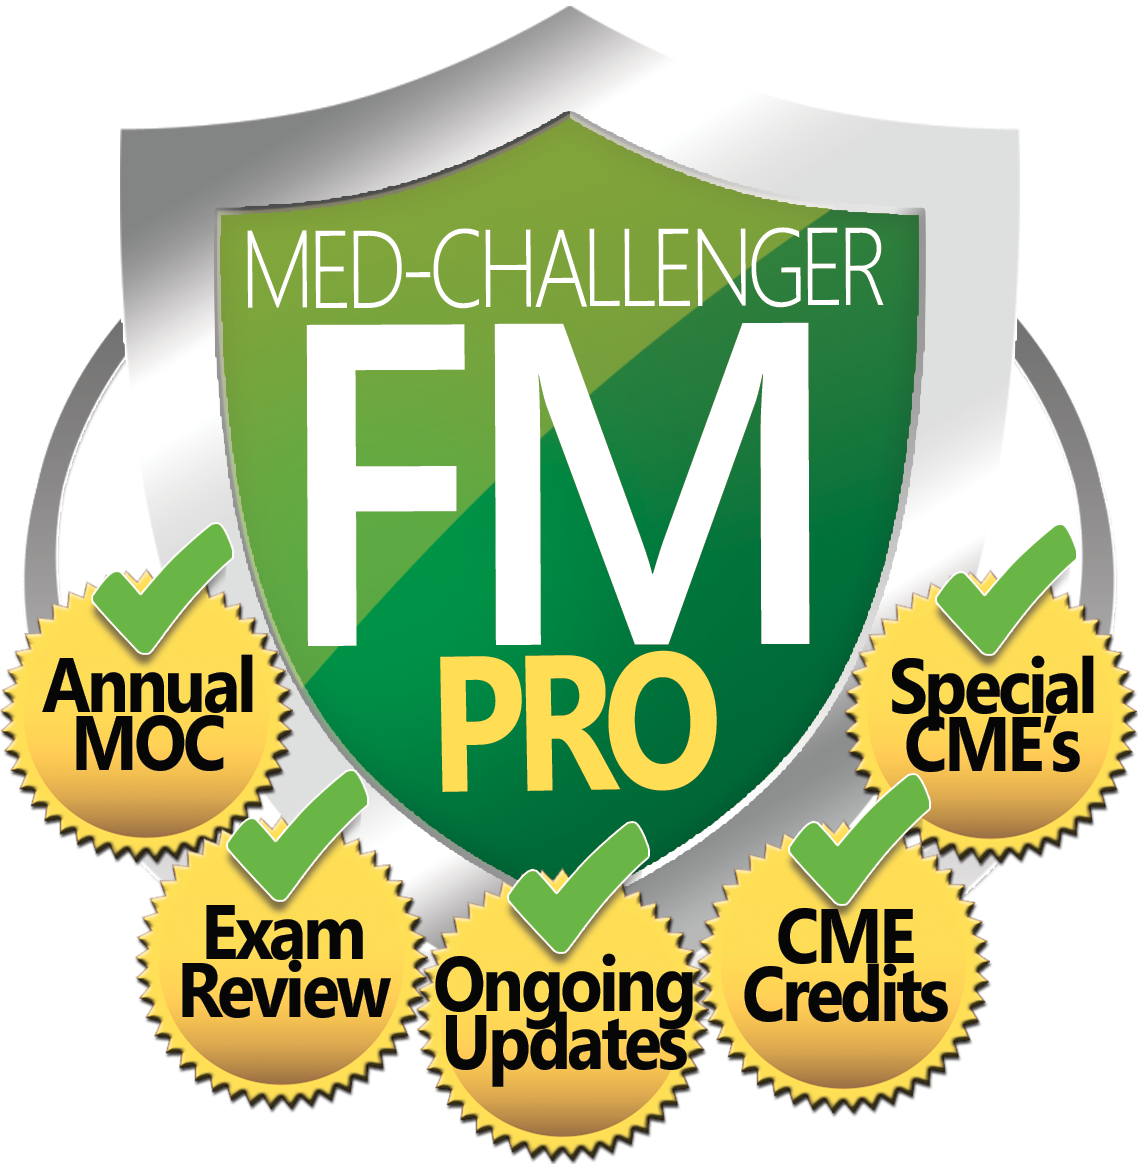 Emergency Medicine Board Review, Med-Challenger EM Pro, Annual MOC, Exam Review, Ongoing Updates, CME Credits, Special CME's